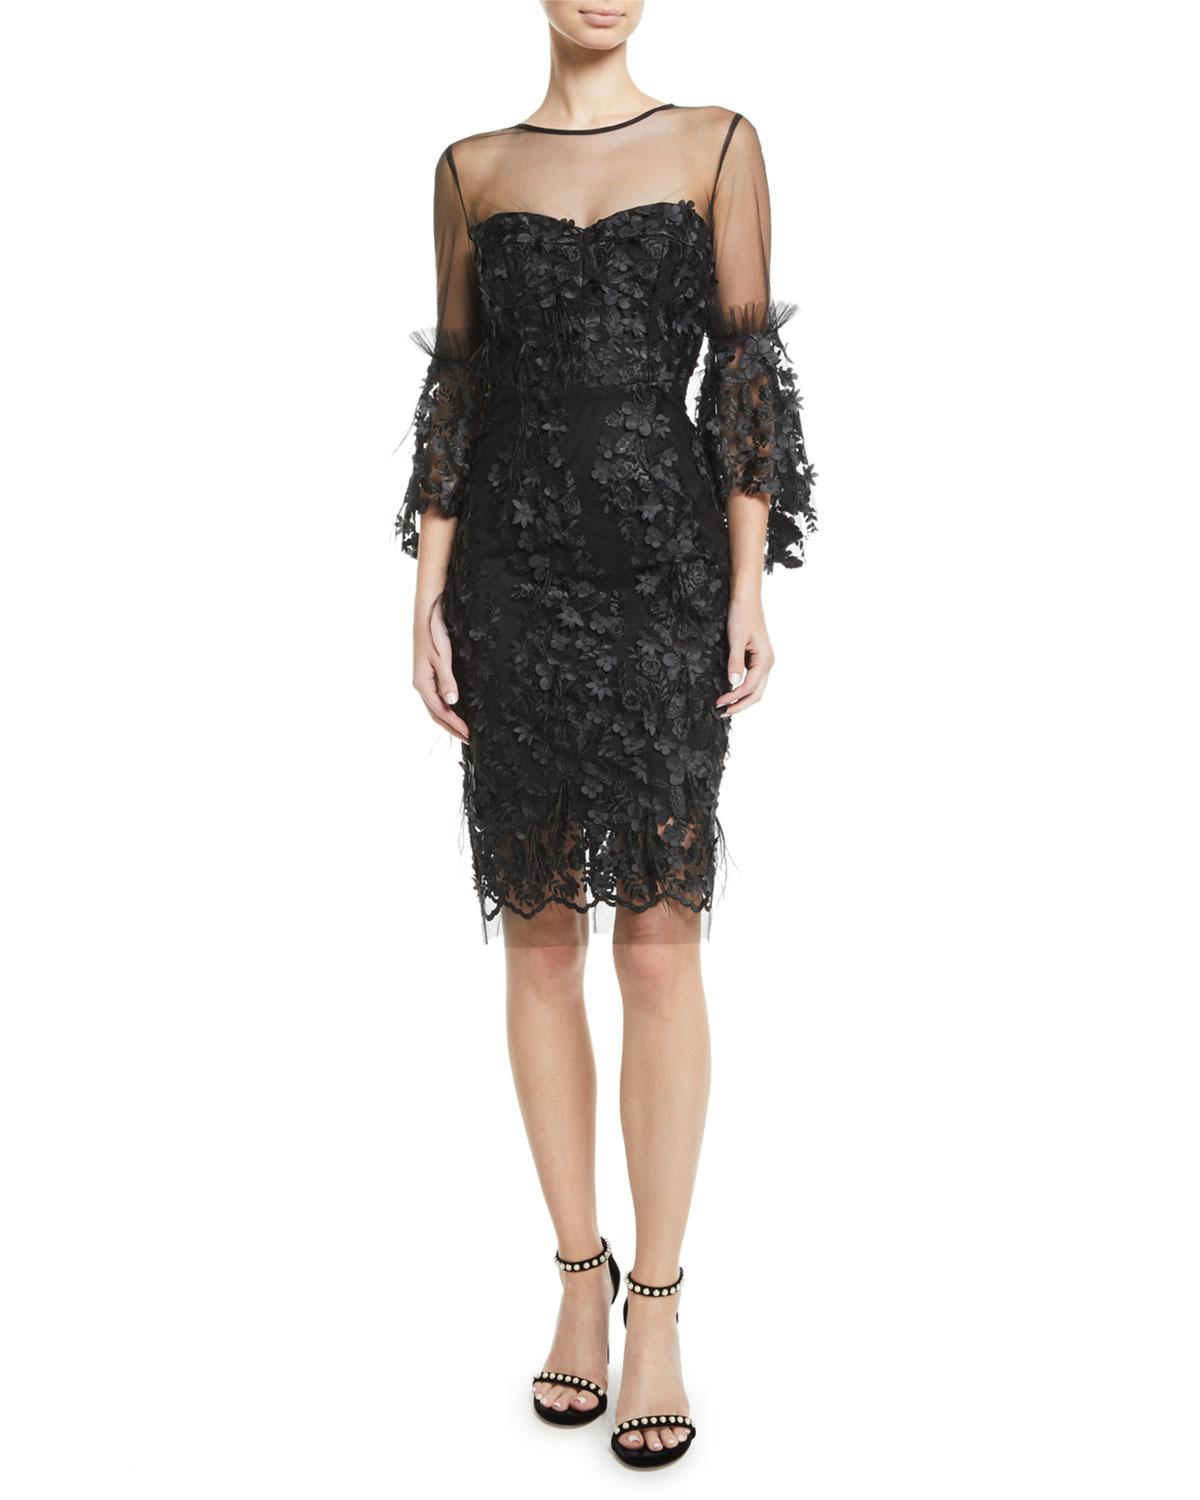 Lyst - MILLY Chrissy Embroidery   Feather Dress in Black f87afcd8d